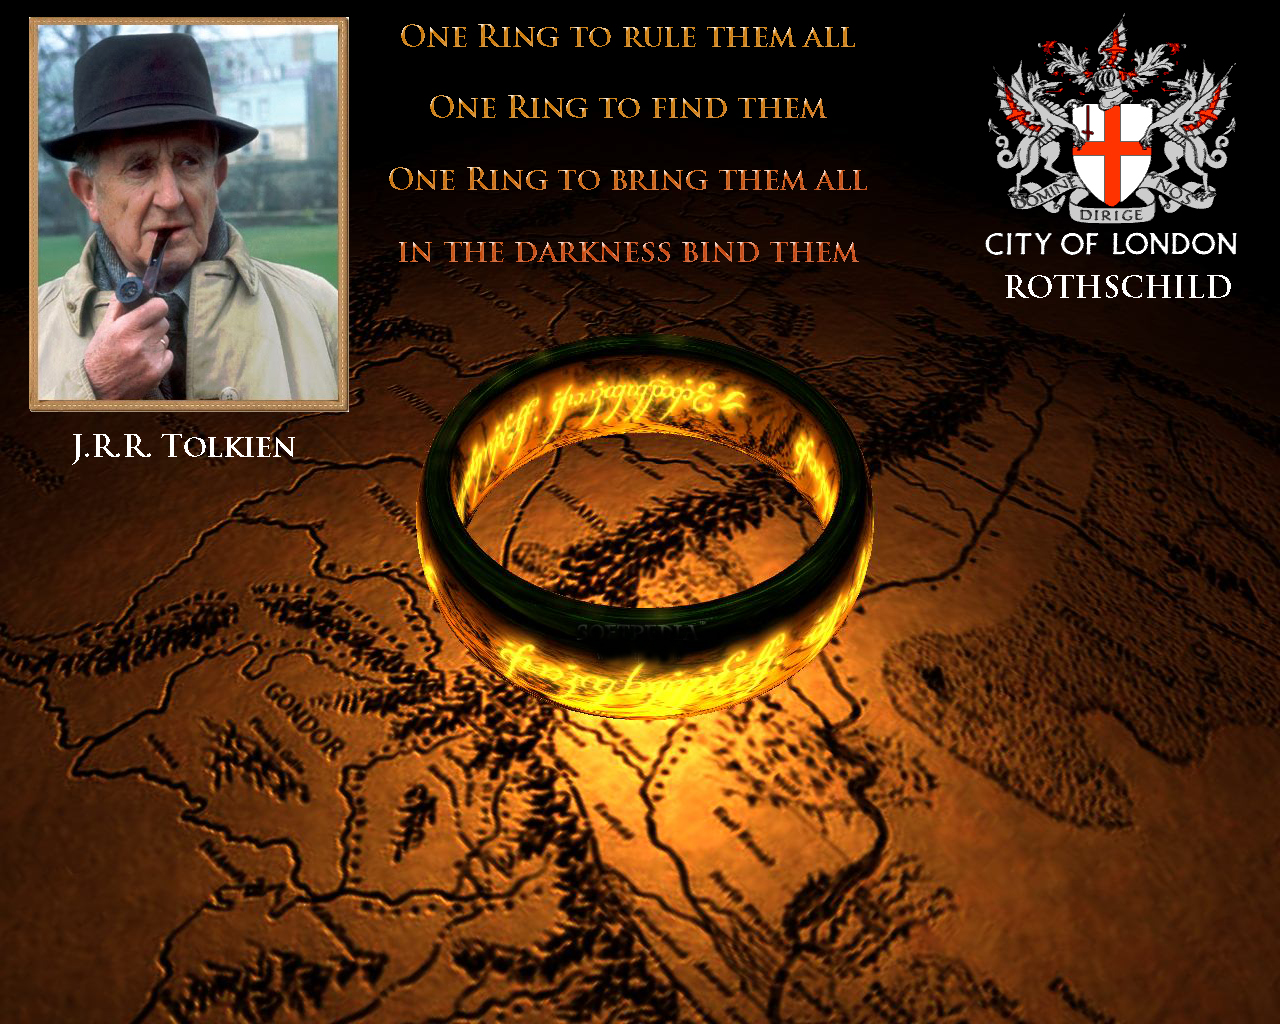 Lord Of The Rings Political Symbolism